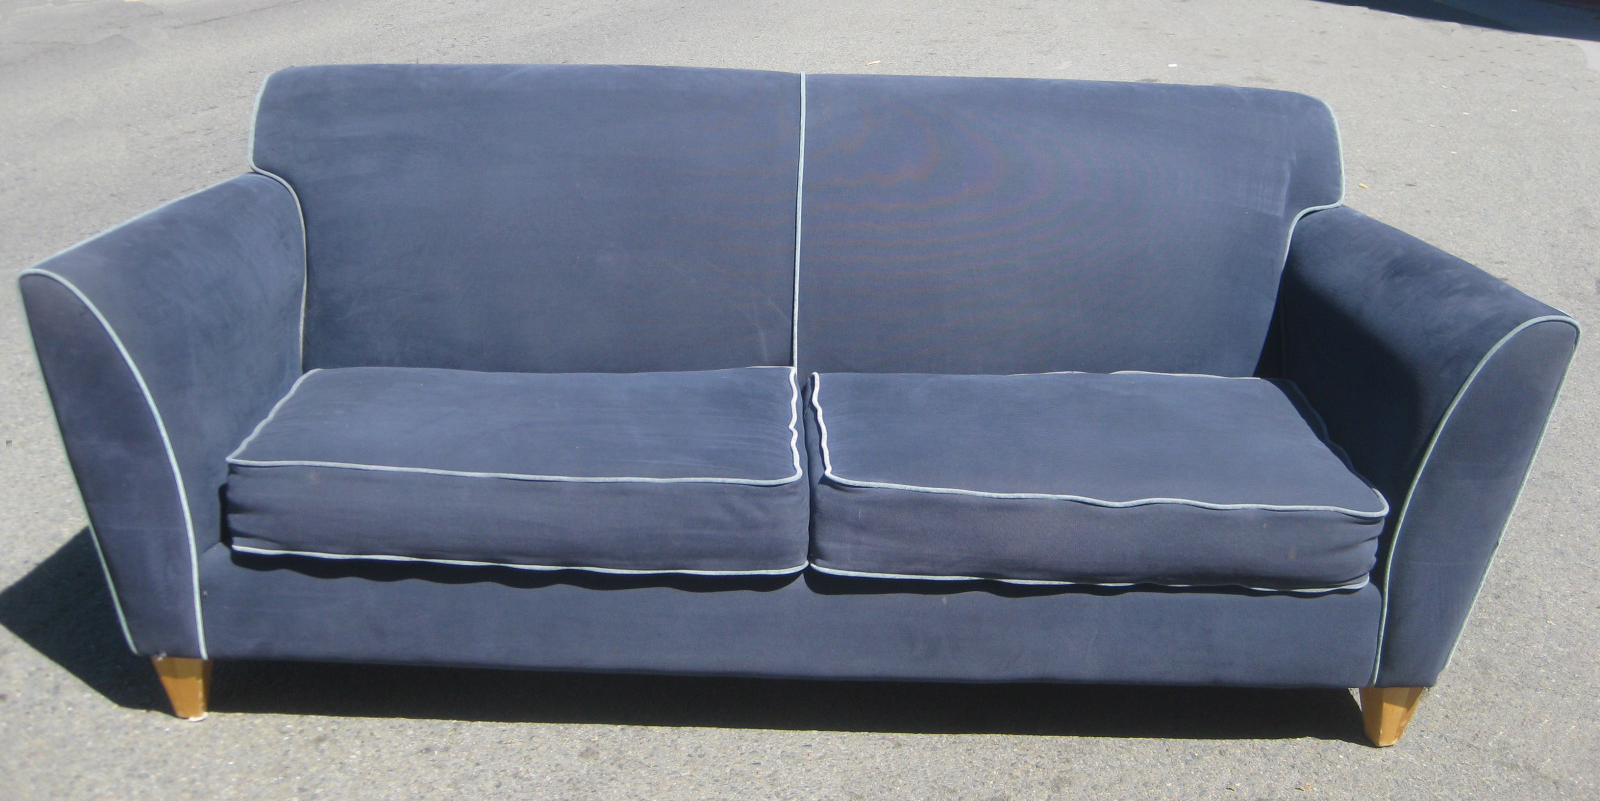 Sofa with piping contemporary blue fabric sectional sofa for Blue and white sofa